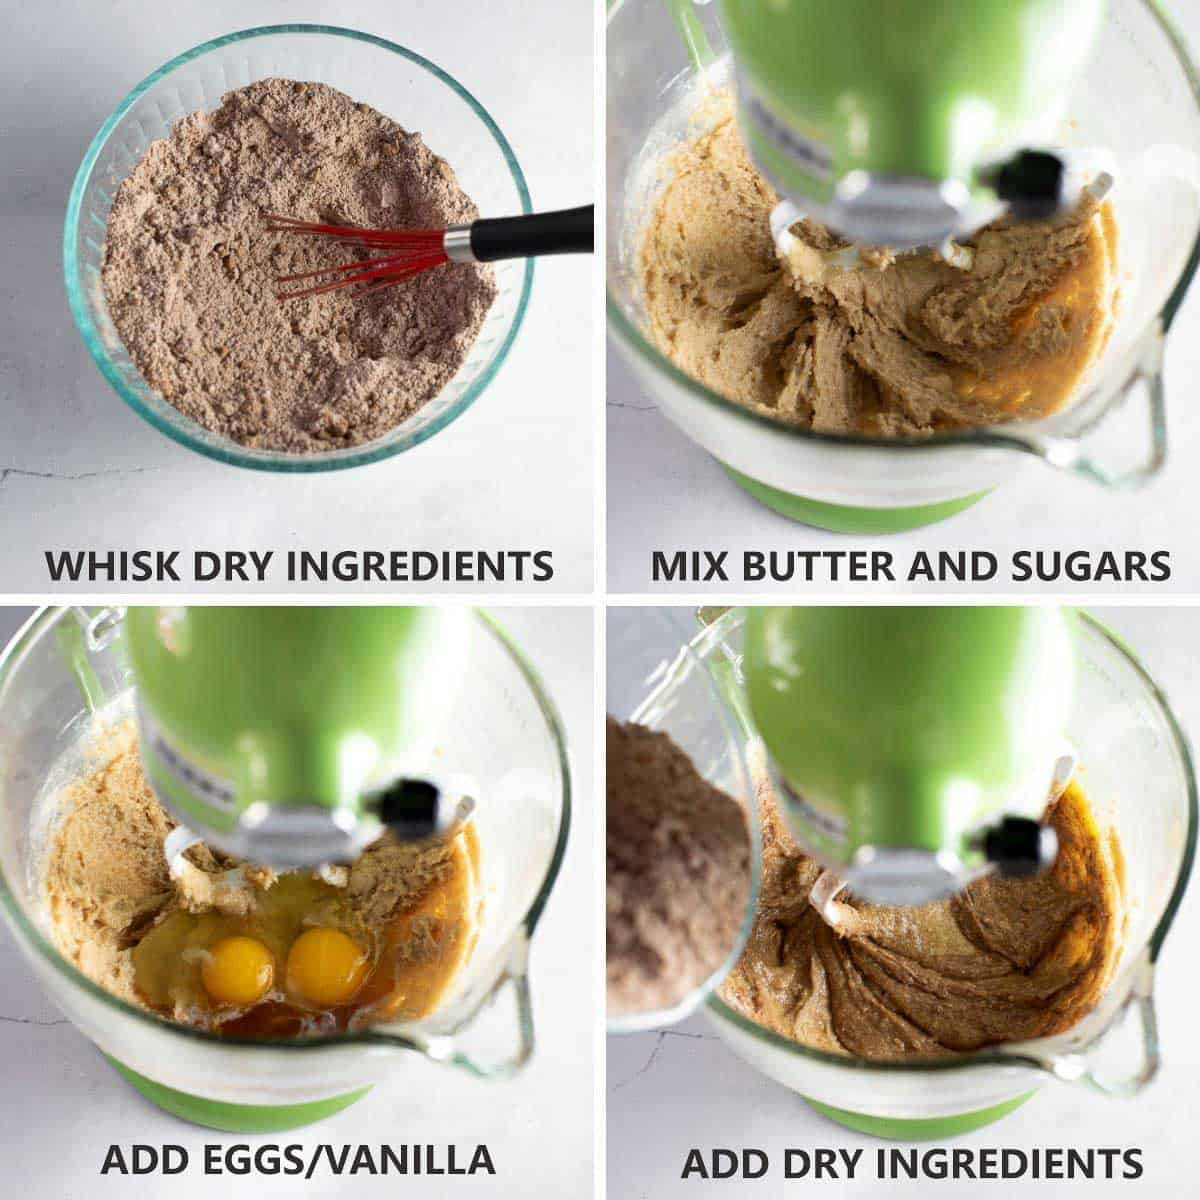 how to make the mint chocolate cookie dough